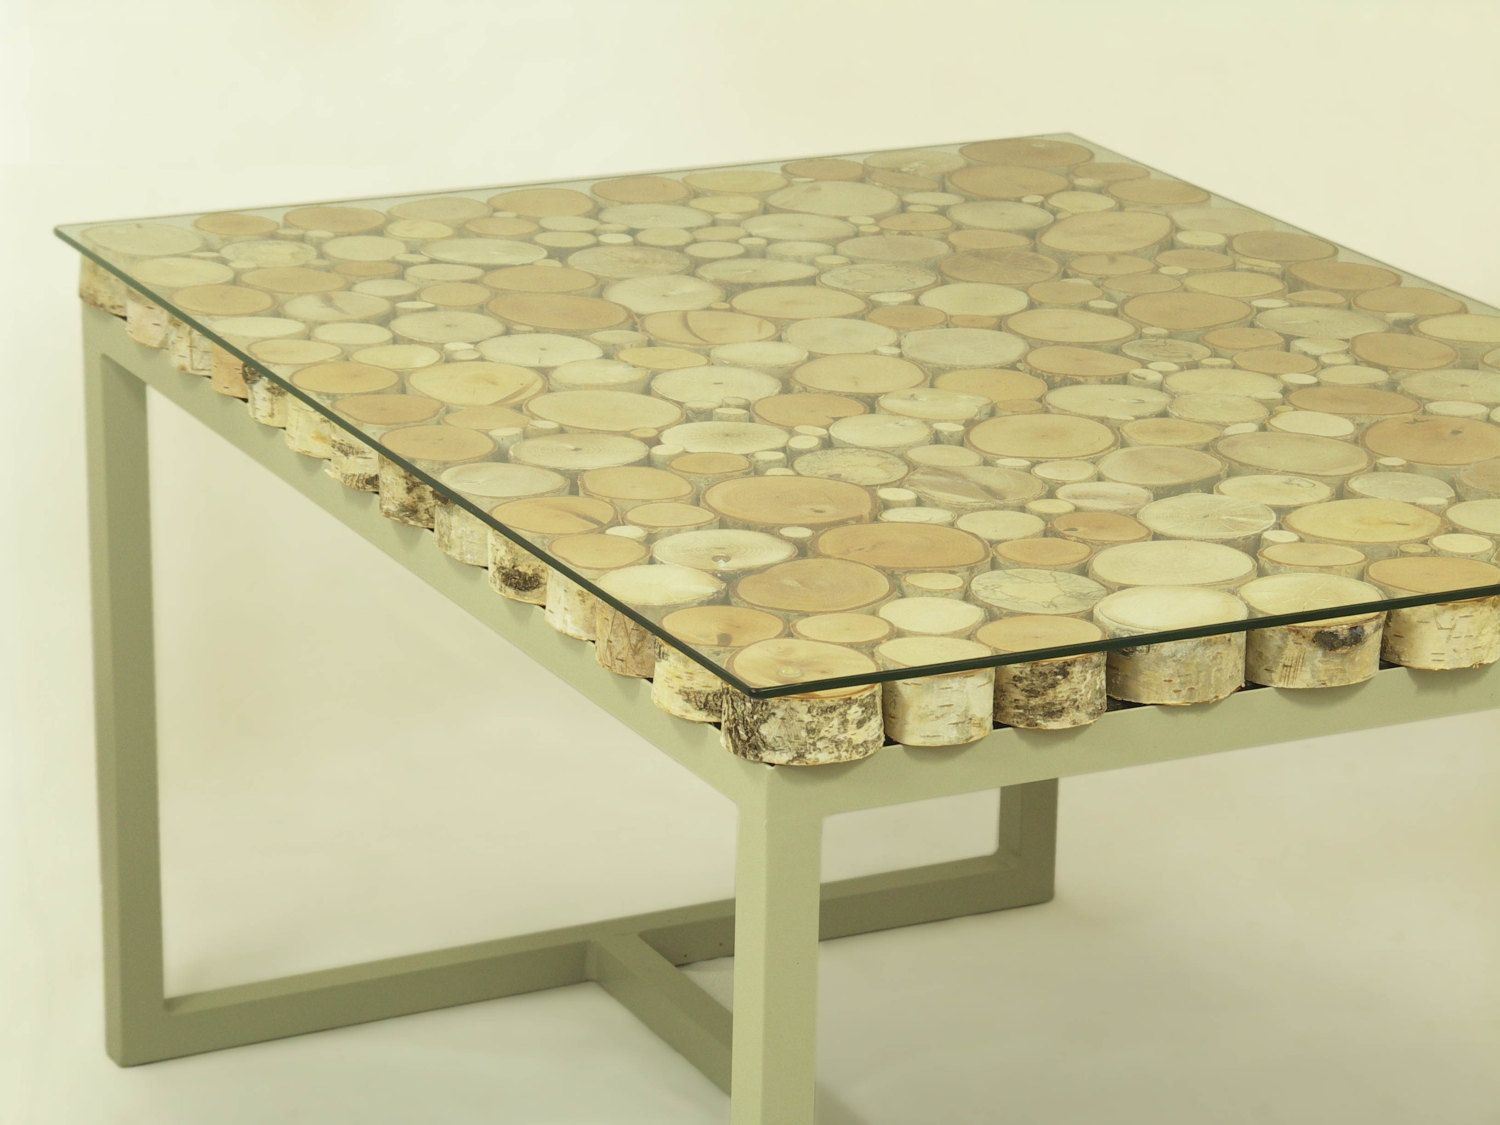 Handmade Small Birch Slices Wooden Coffee Table By FreeTreeStudio,  Zł1,250.00